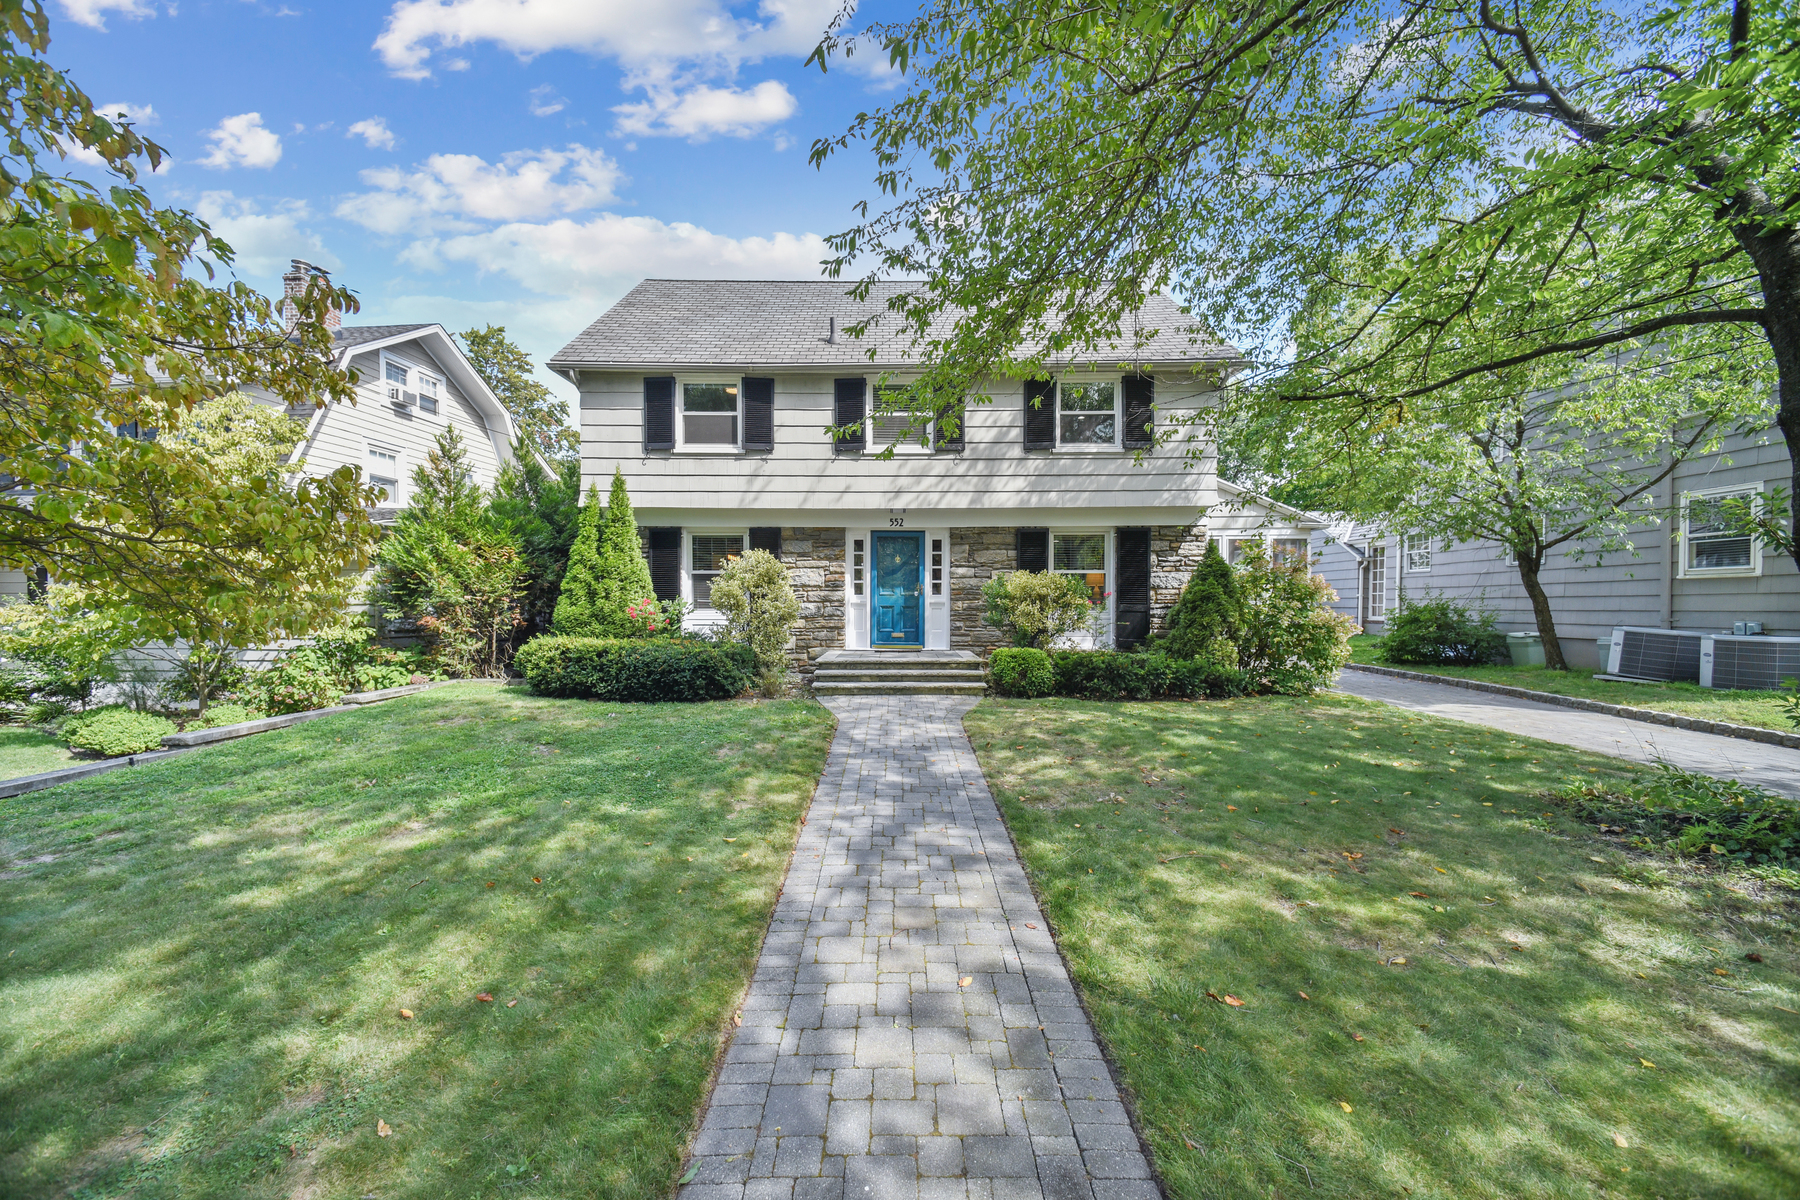 Single Family Homes for Active at Entertainer's Dream 552 Prospect Street Maplewood, New Jersey 07039 United States